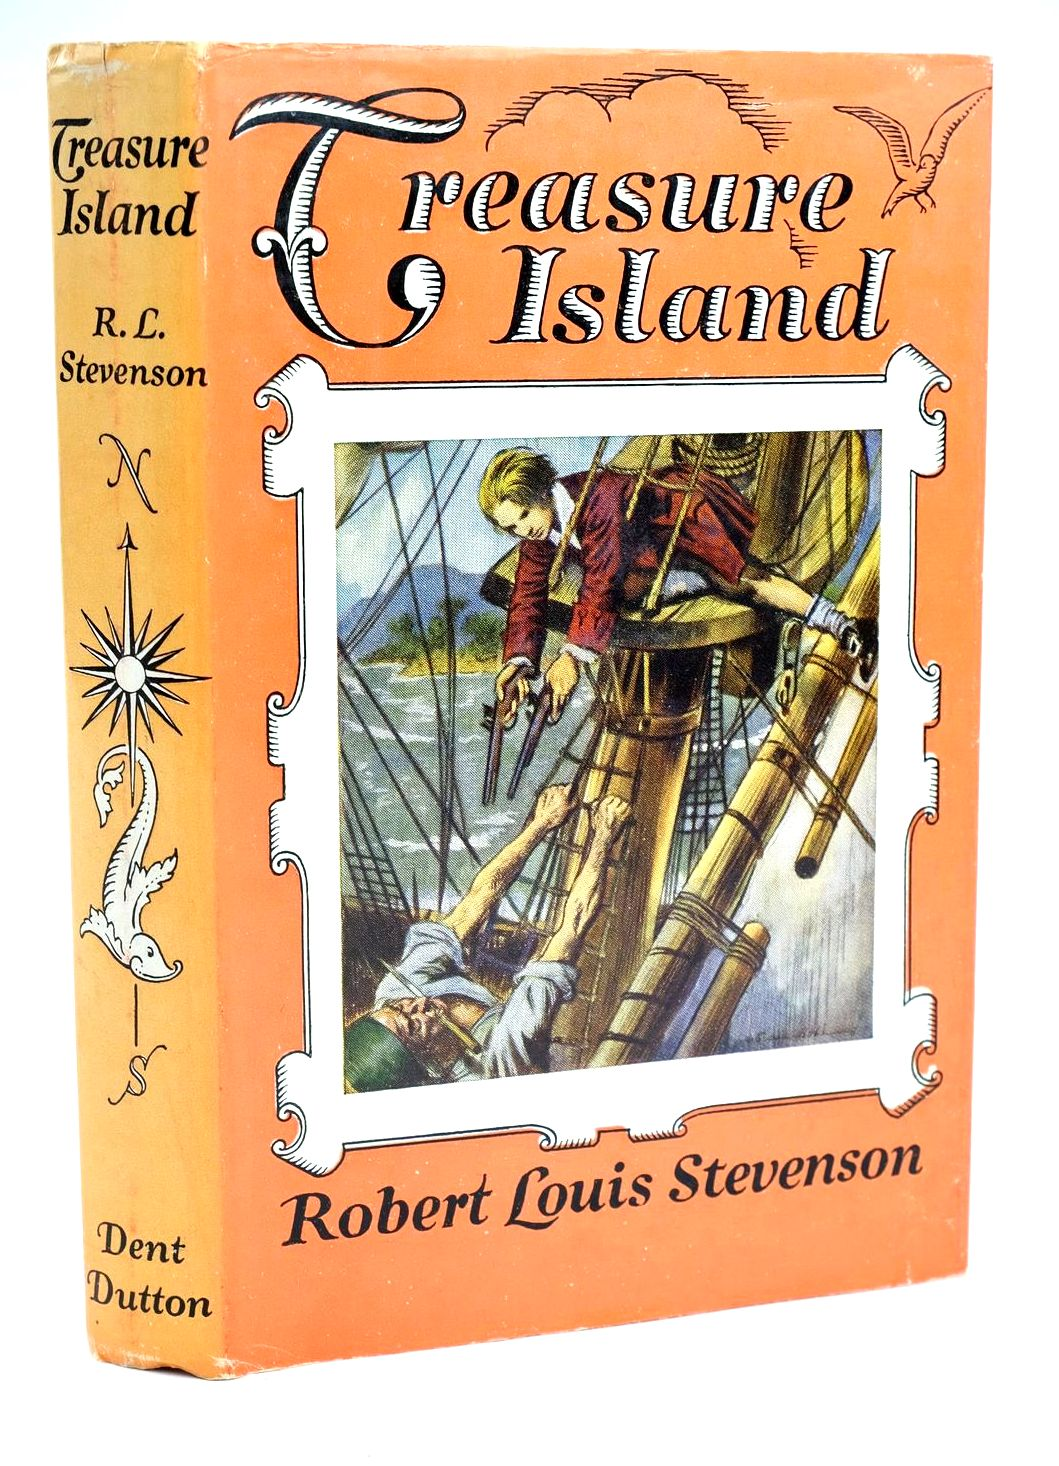 Photo of TREASURE ISLAND written by Stevenson, Robert Louis illustrated by Van Abbe, S. published by J.M. Dent & Sons Ltd. (STOCK CODE: 1319197)  for sale by Stella & Rose's Books